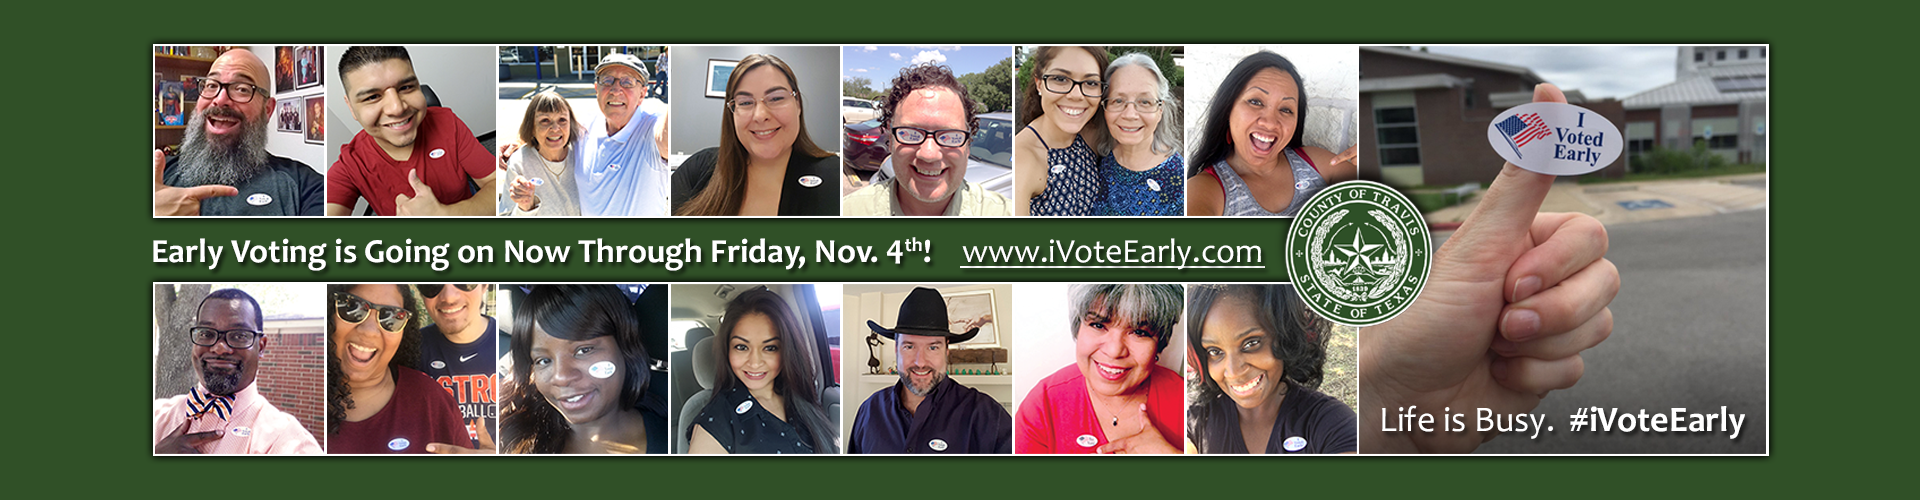 Early Voting: Monday, Oct. 24 - Friday, Nov. 4